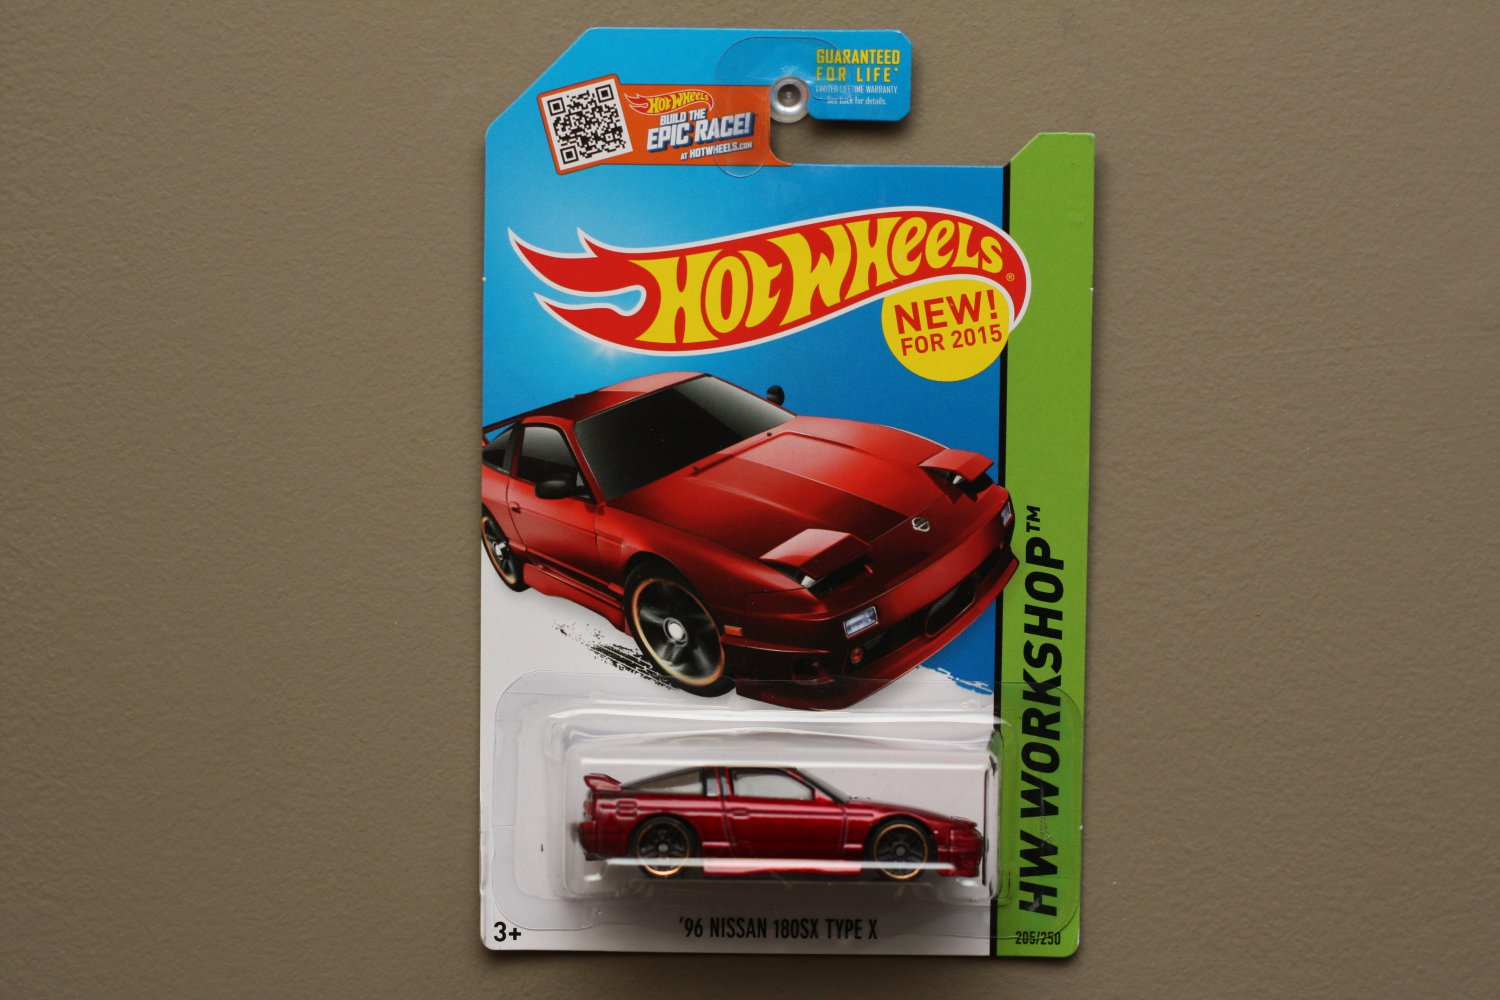 Hot Wheels 2015 HW Workshop '96 Nissan 180SX Type X (red) (SEE CONDITION)